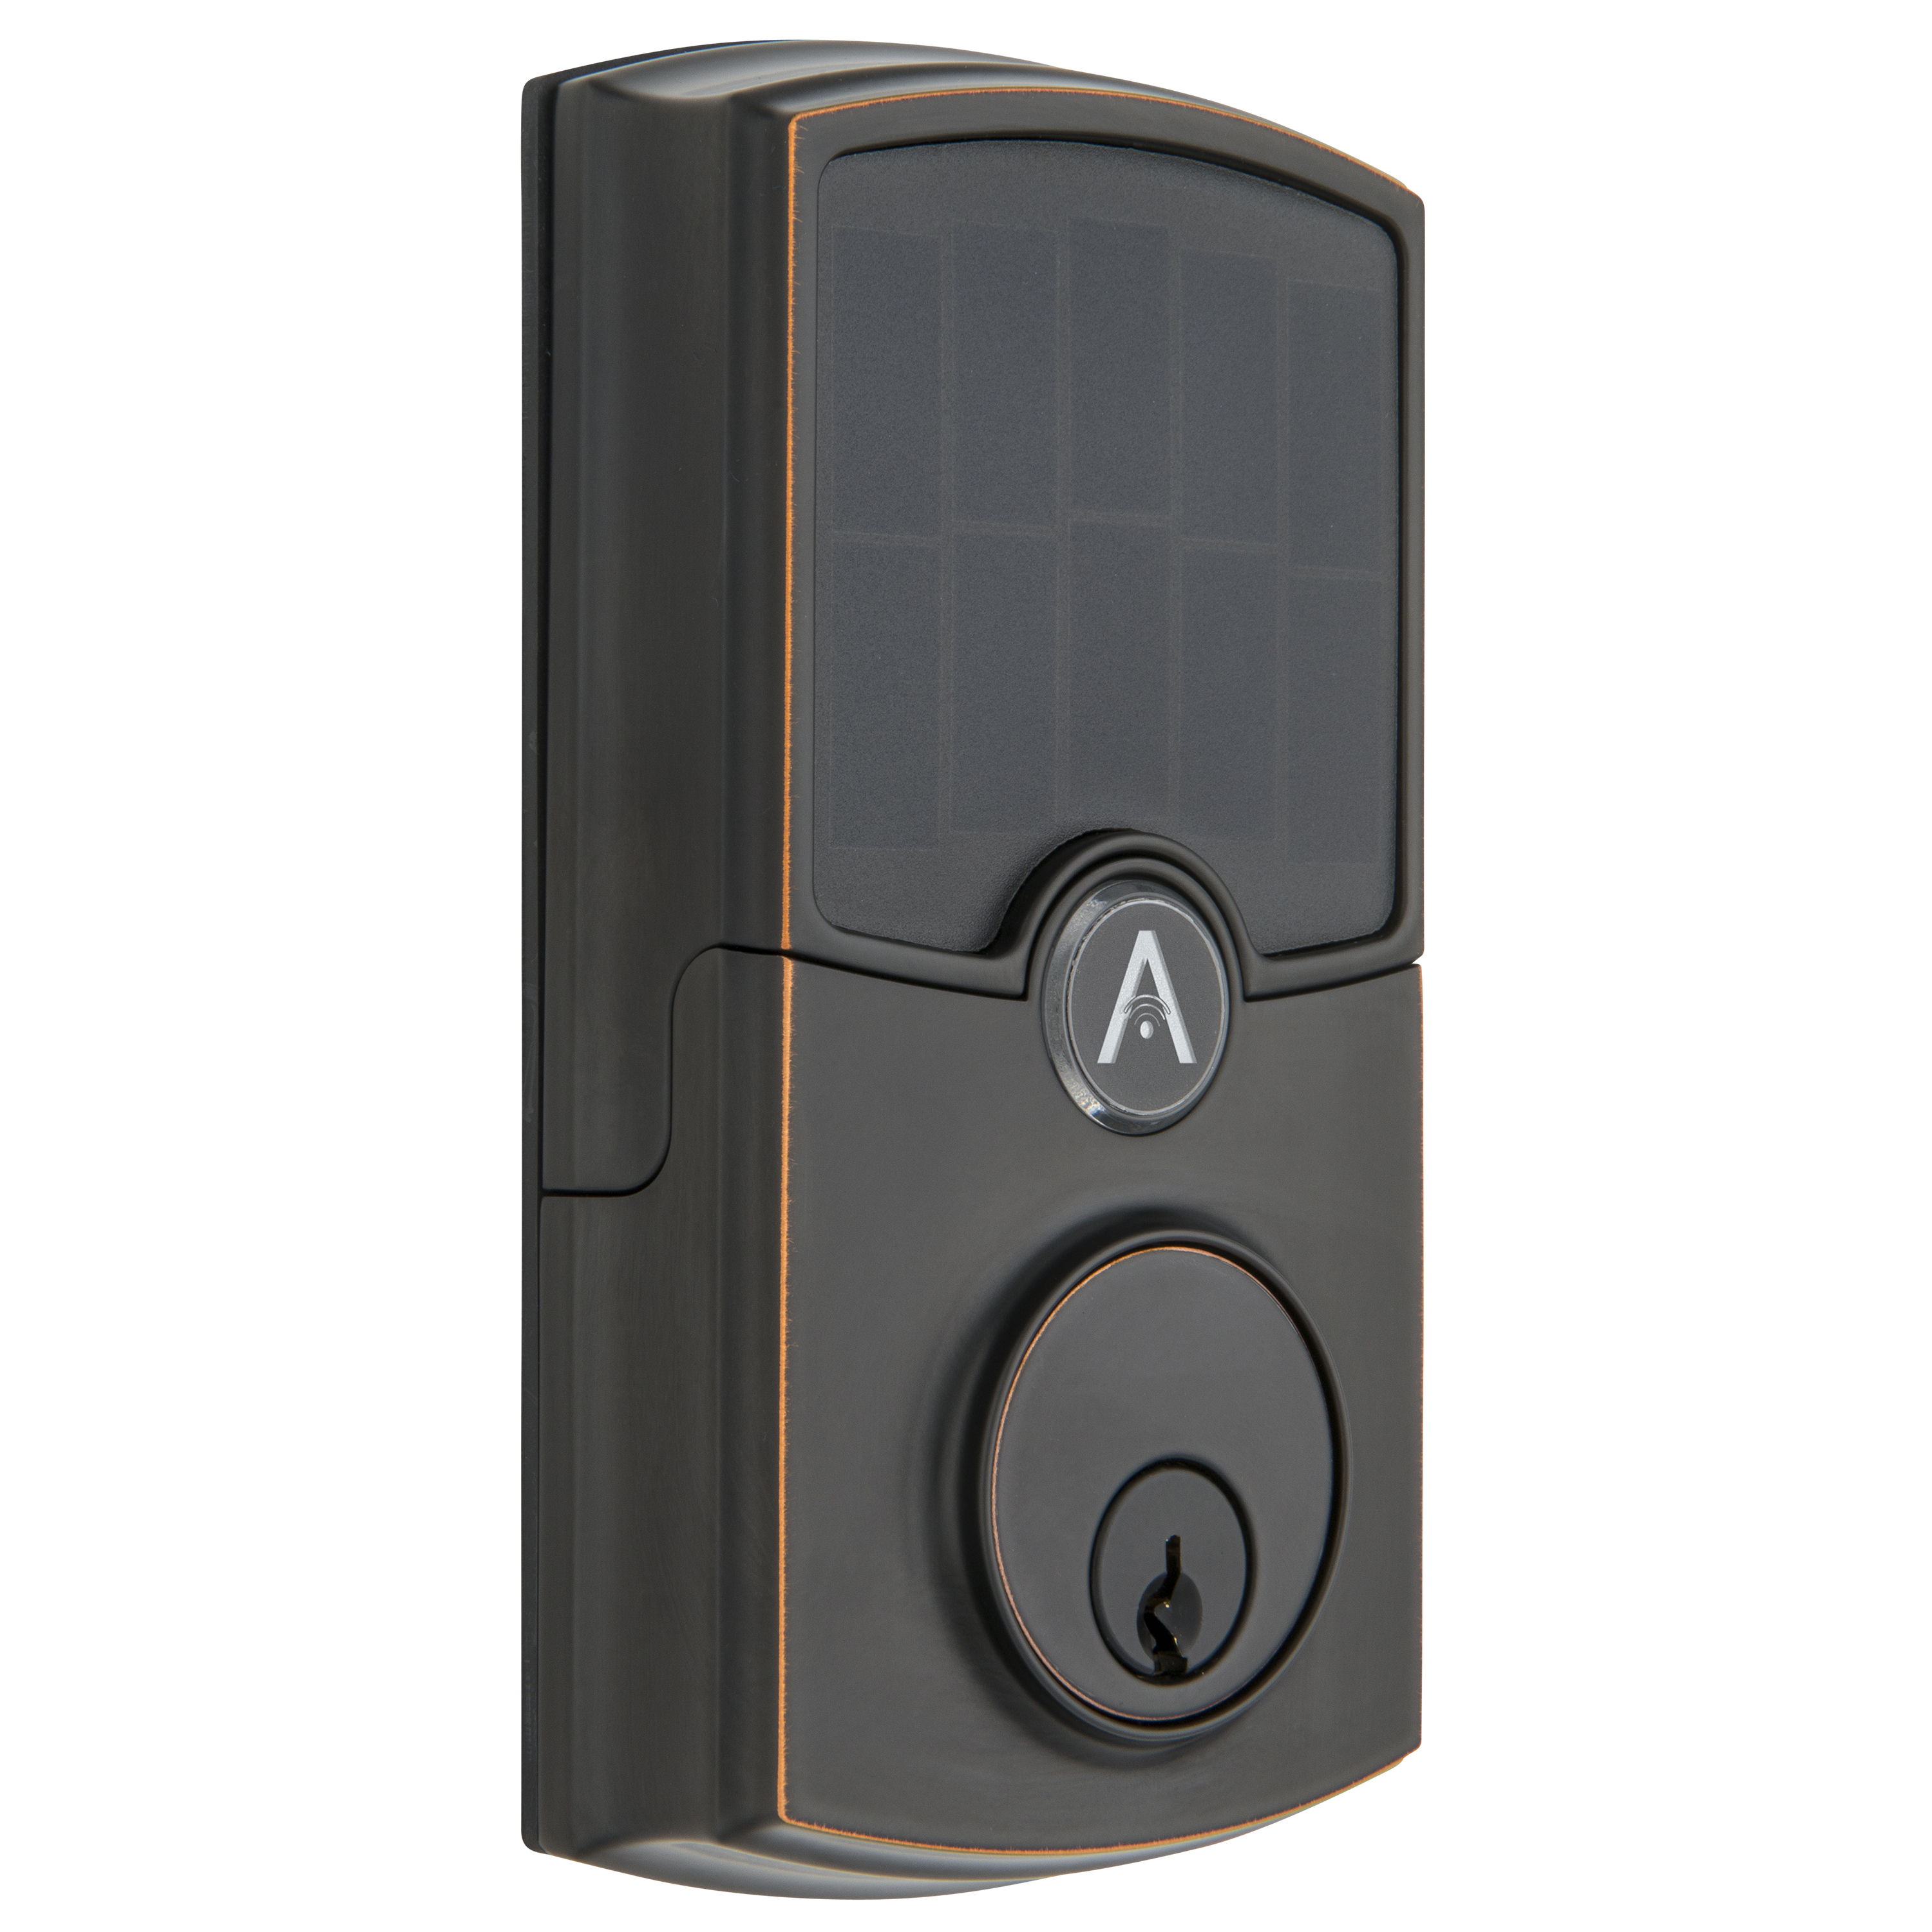 ARRAY By Hampton™ Connected Door Lock Launched at ACE Hardware and ...